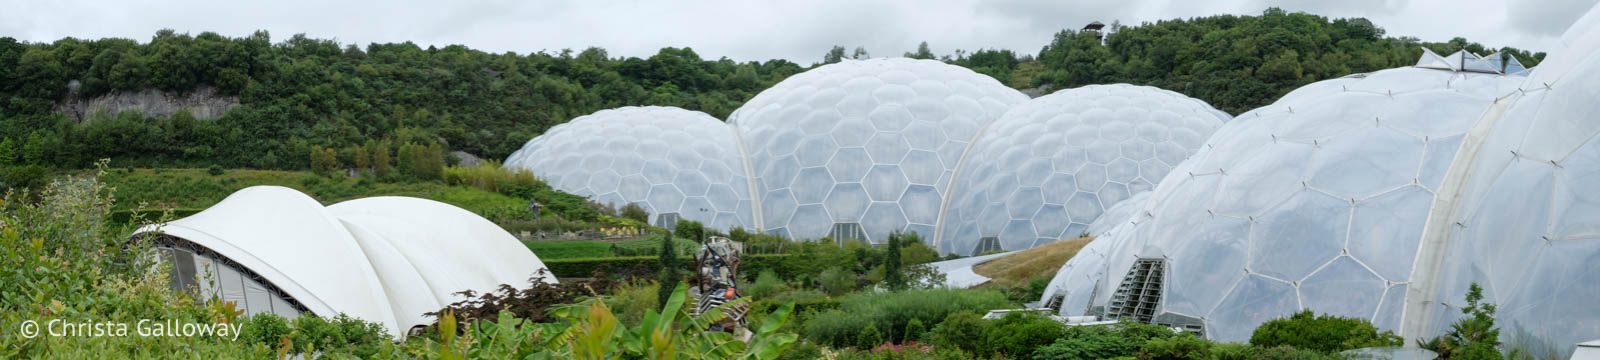 The stage, the rainforest biome and the Mediterranean biome at the Eden Project in Cornwall. Photo by Christa Galloway.